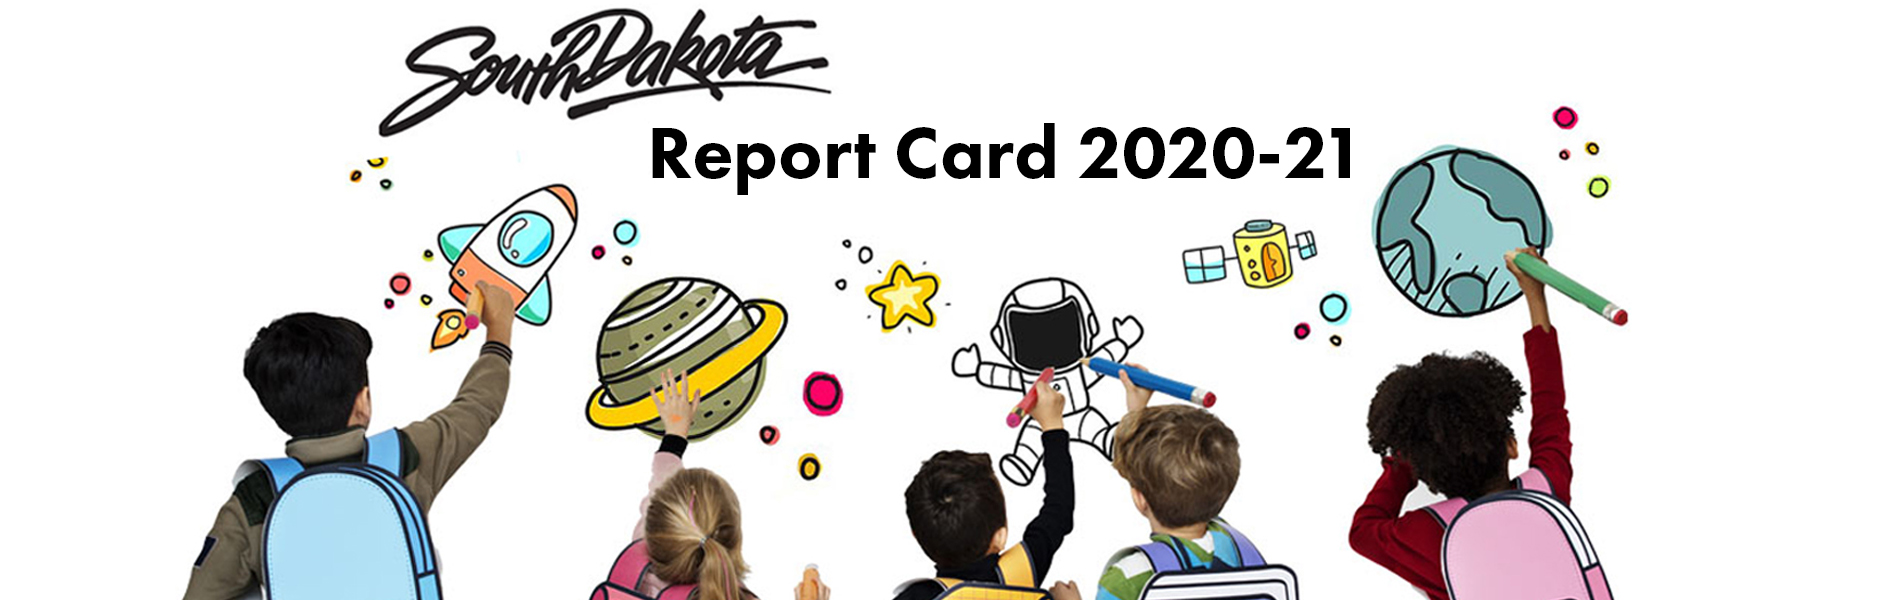 Current Report Card